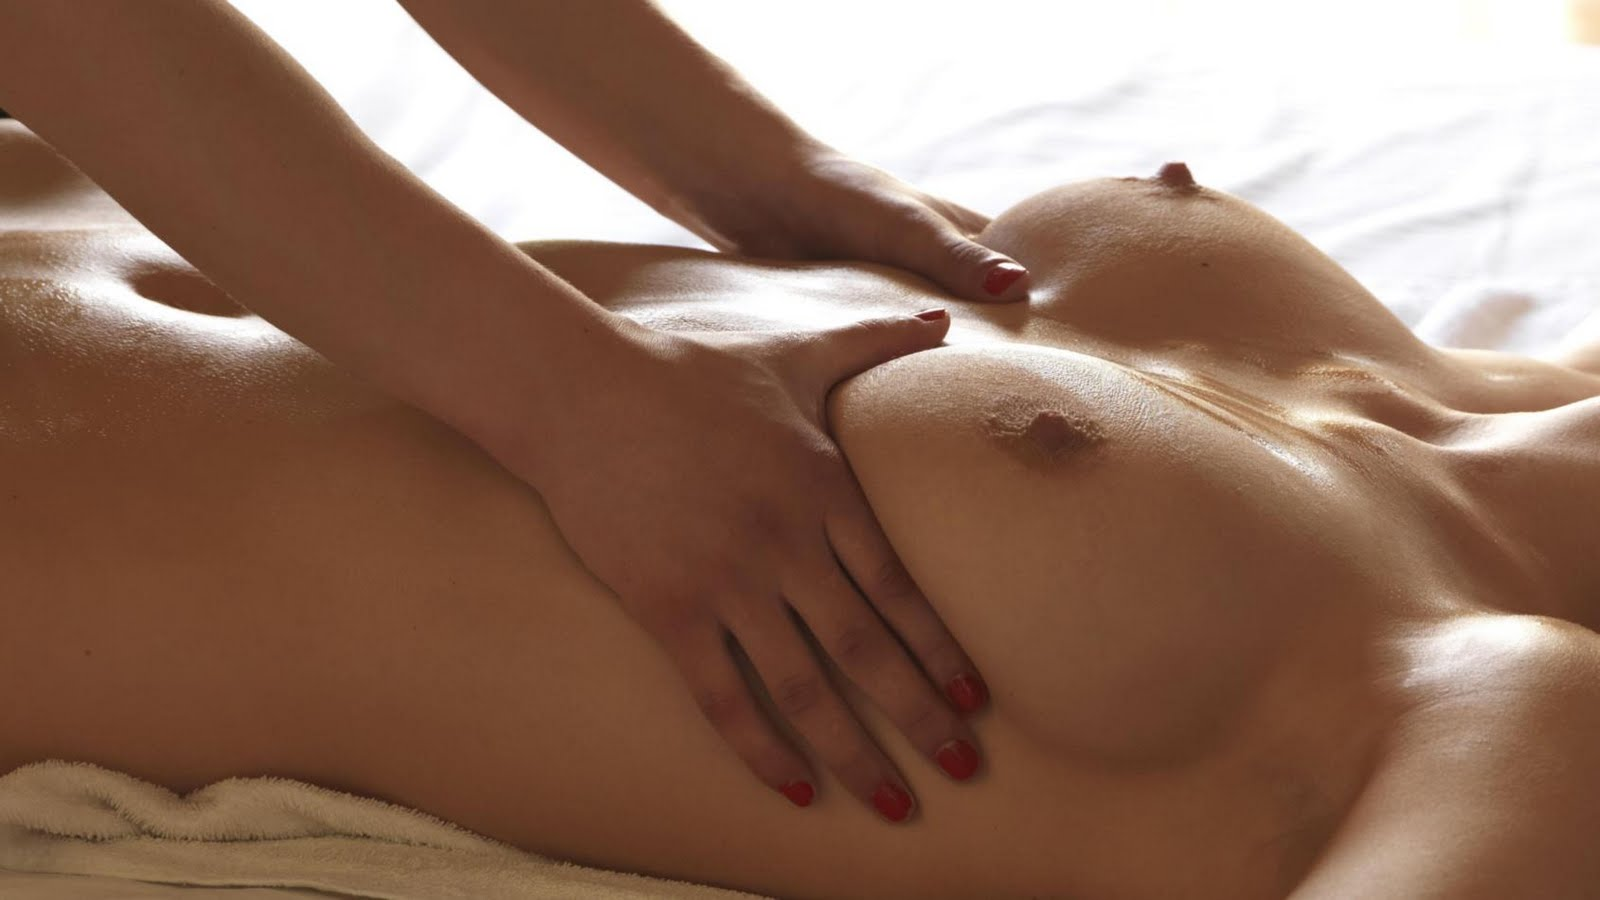 nude breast massage with pics